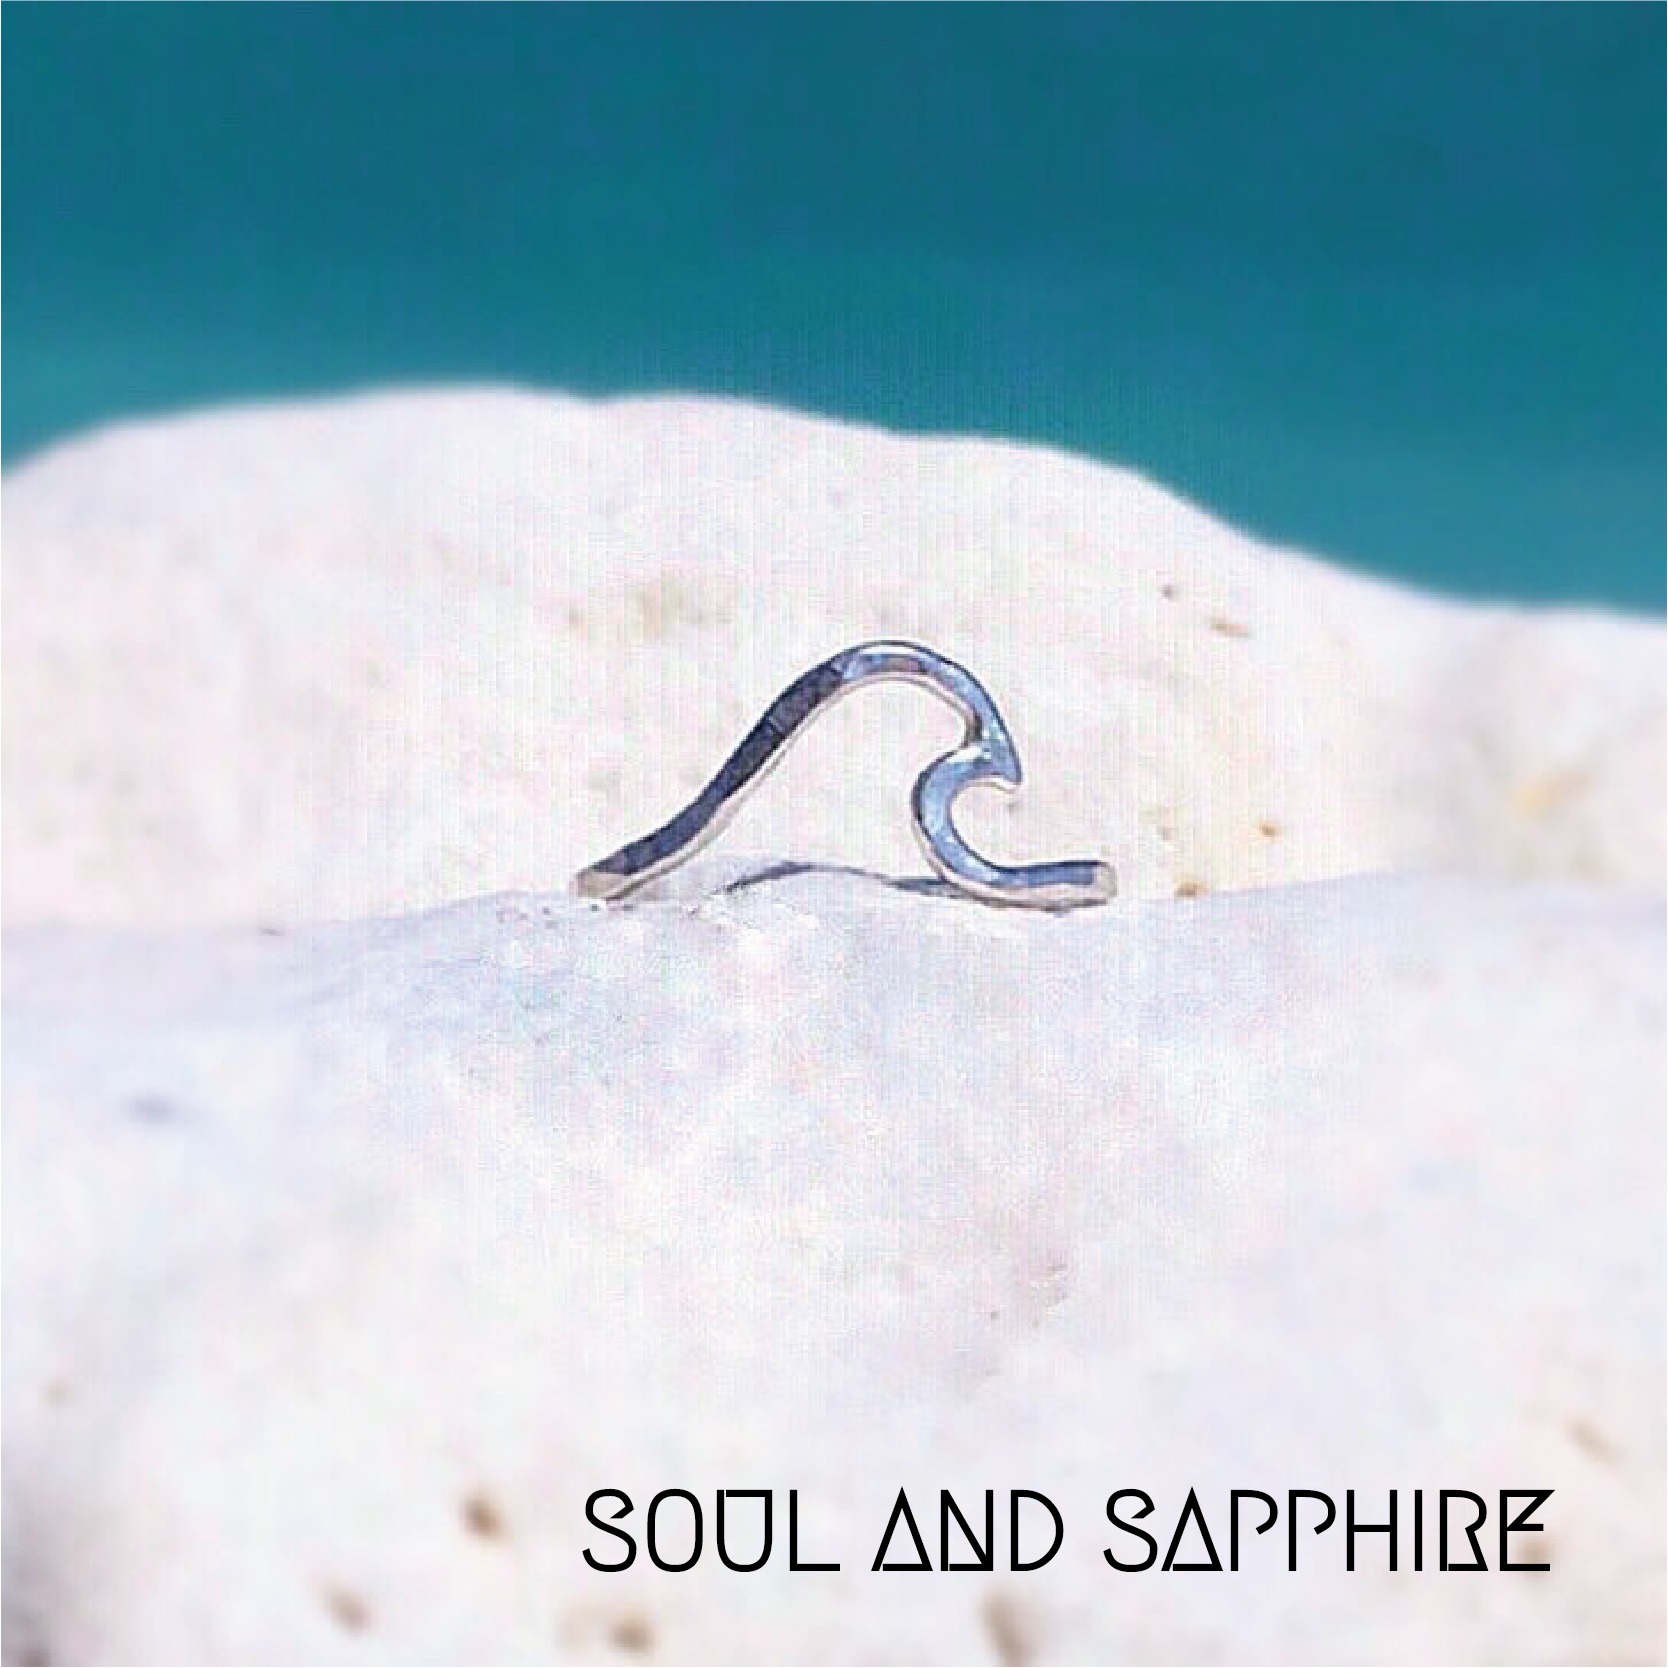 Soul-and-sapphire-eco-jewelerry.png